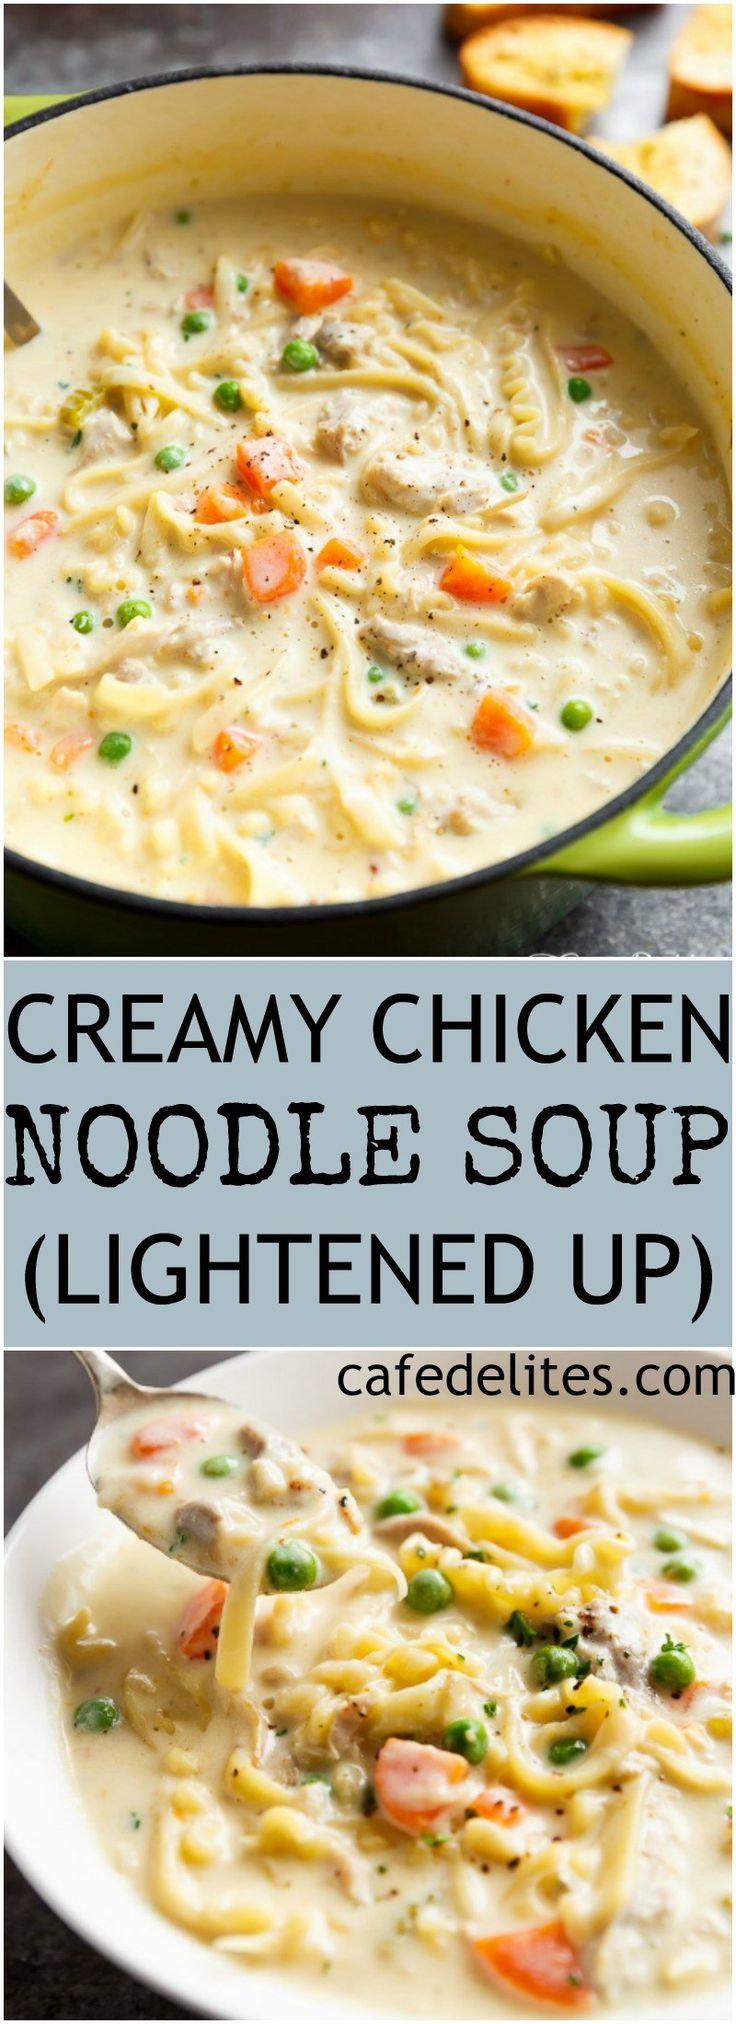 Super creamy Chicken Noodle Soup beats any soup any day. The perfect comfort food in a bowl, lightened up with half of the calories AND no heavy cream! | https://cafedelites.com